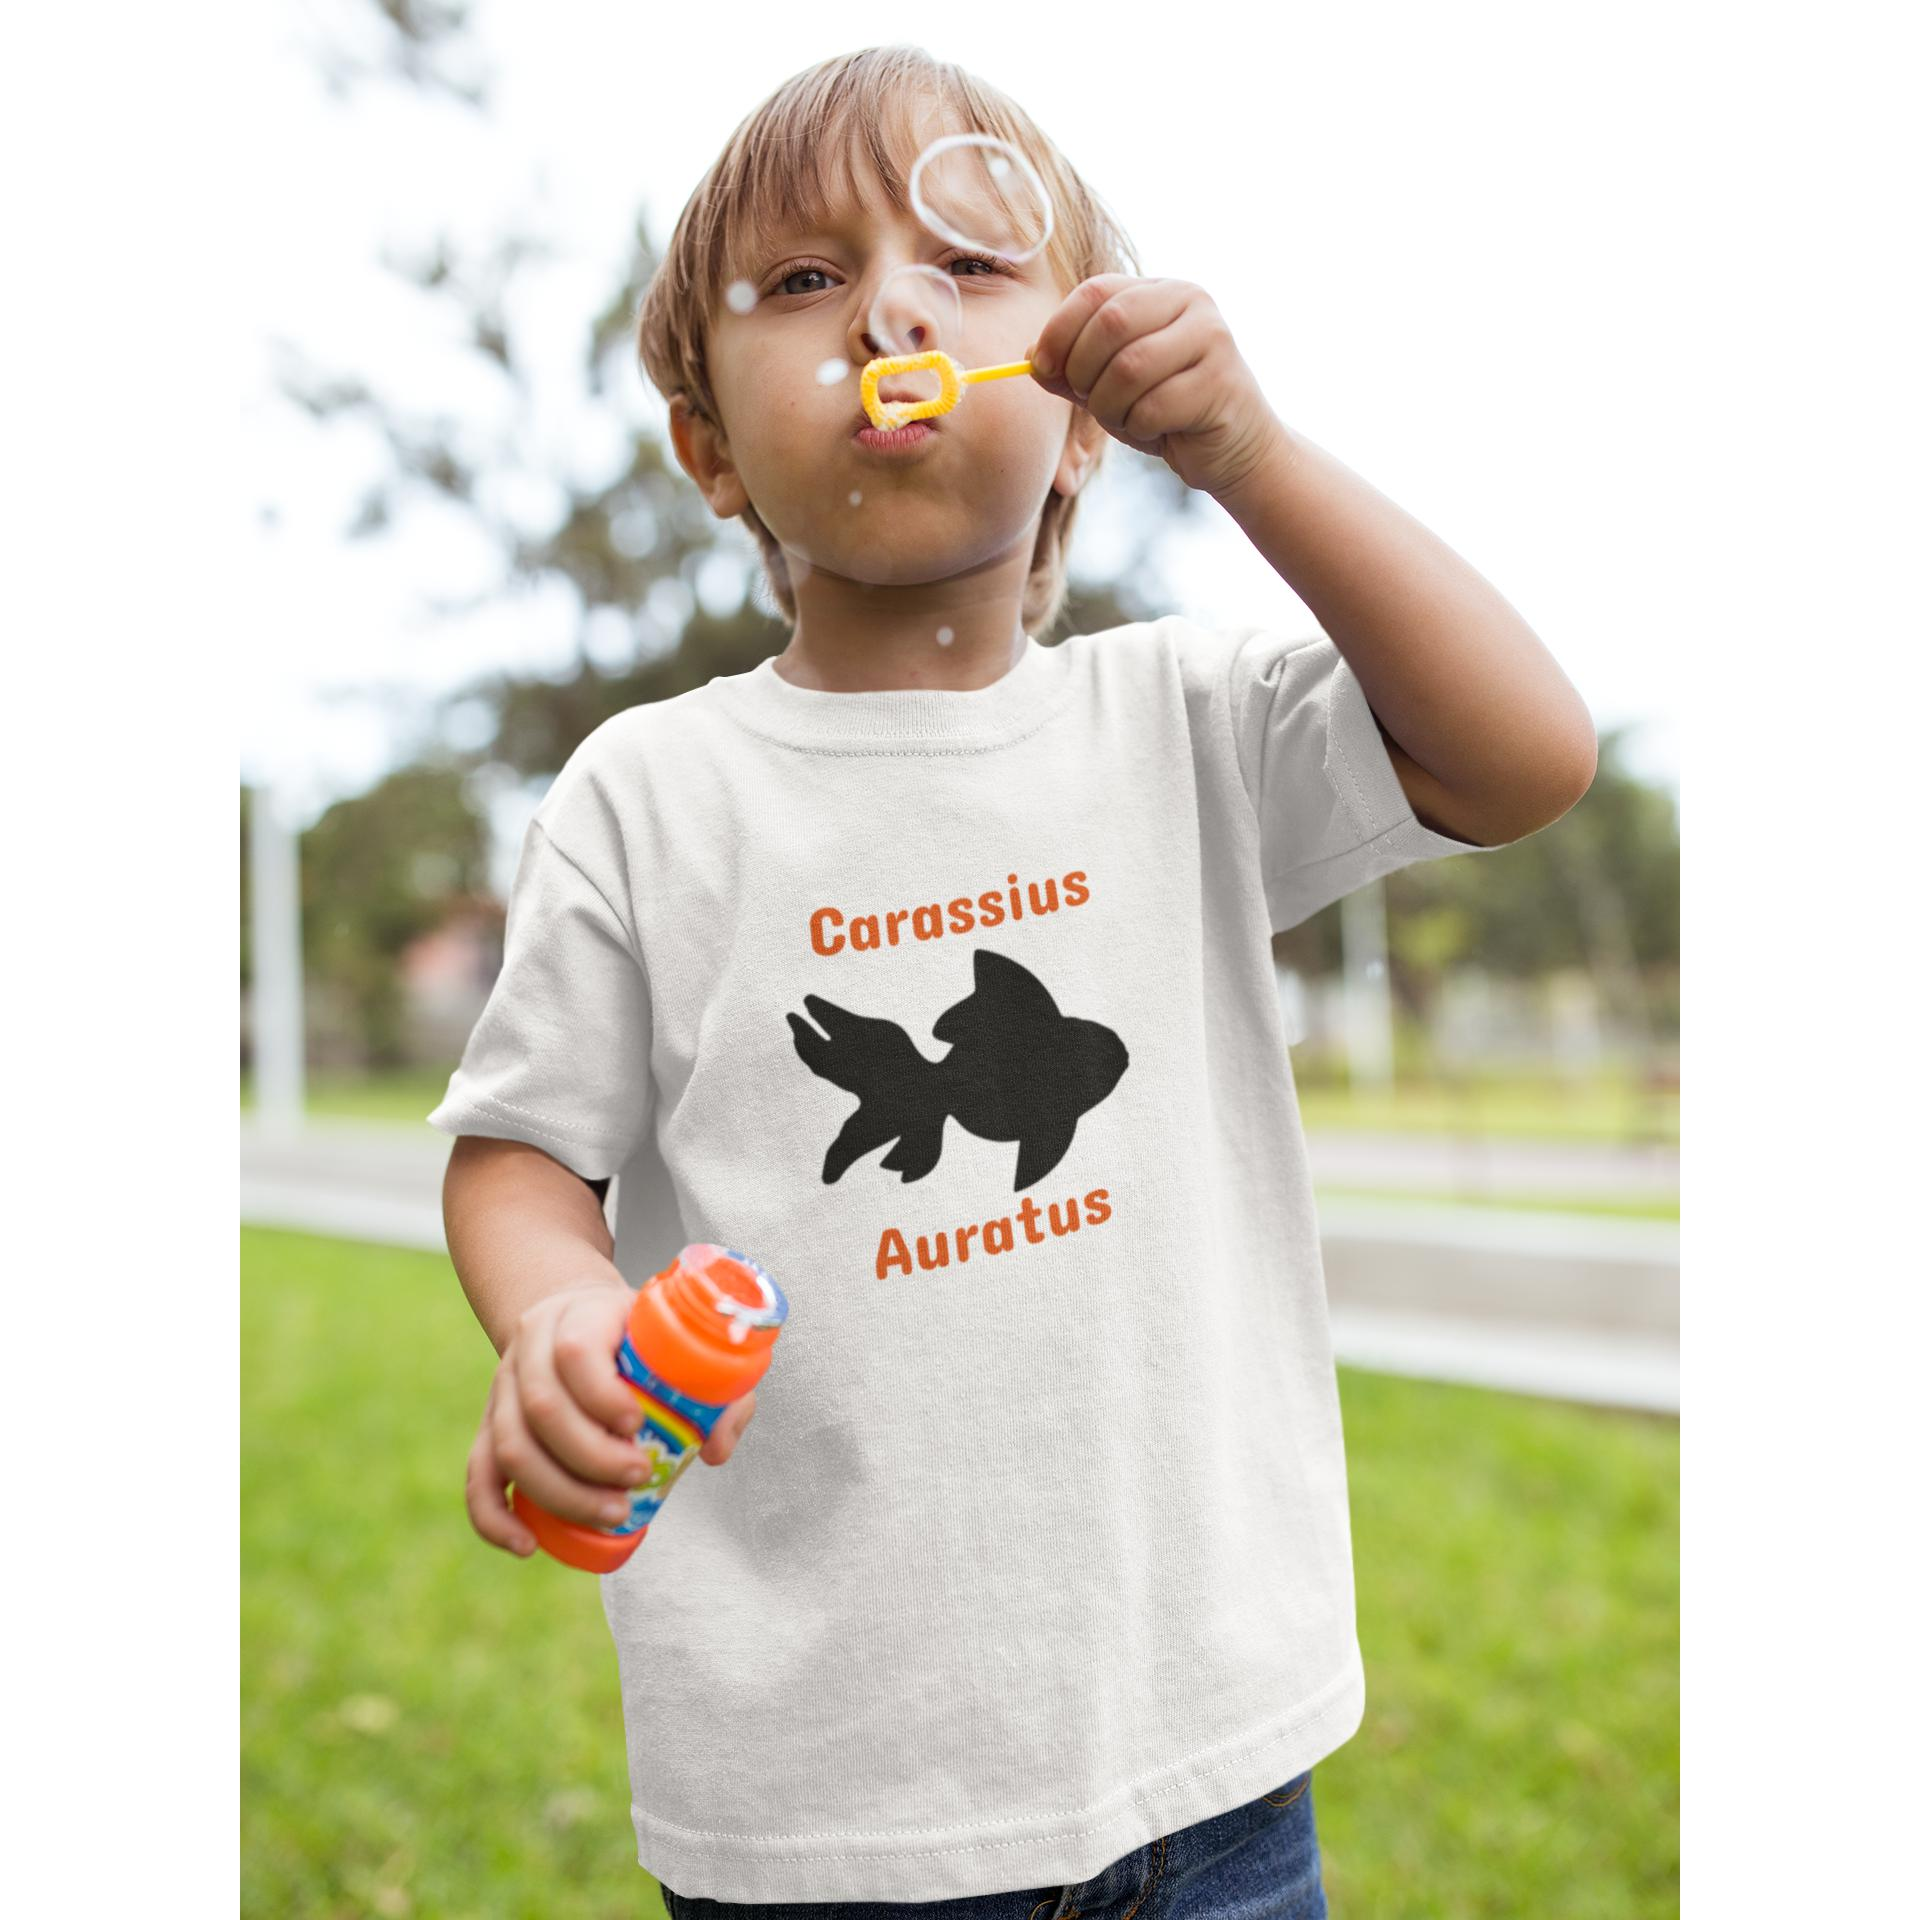 Goldfish AS Colour Kids Youth Crew T-Shirt-Kids - Apparel - T-Shirts-Tiny White Lies